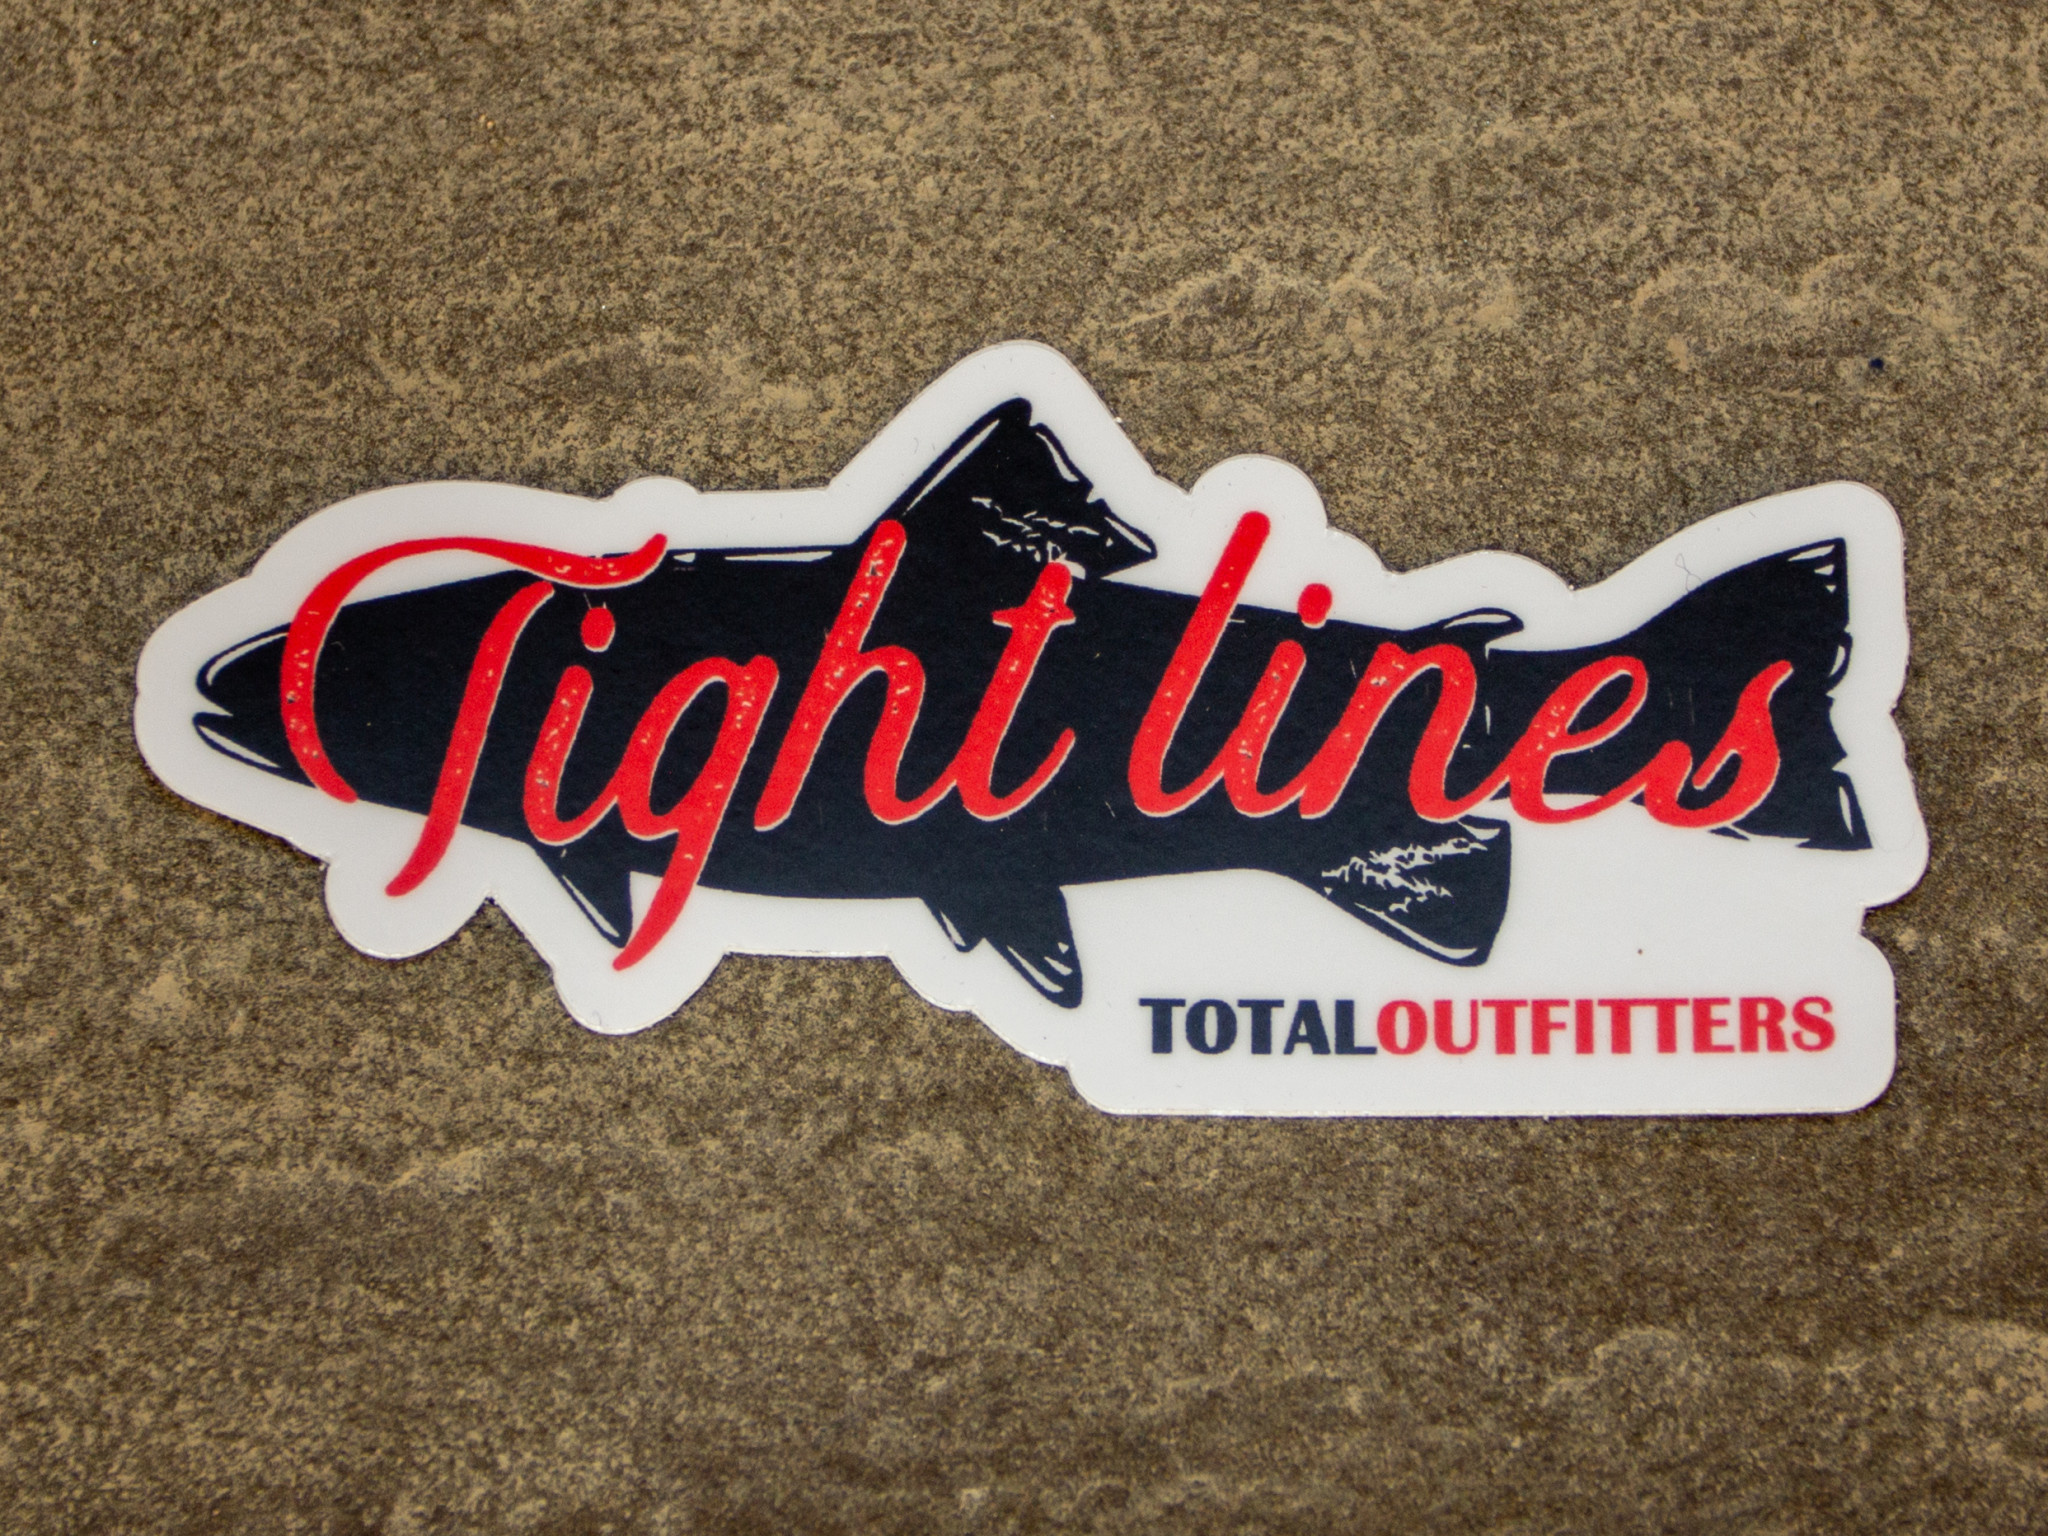 TOTAL OUTFITTERS TOTAL OUTFITTERS TIGHT LINES STICKER